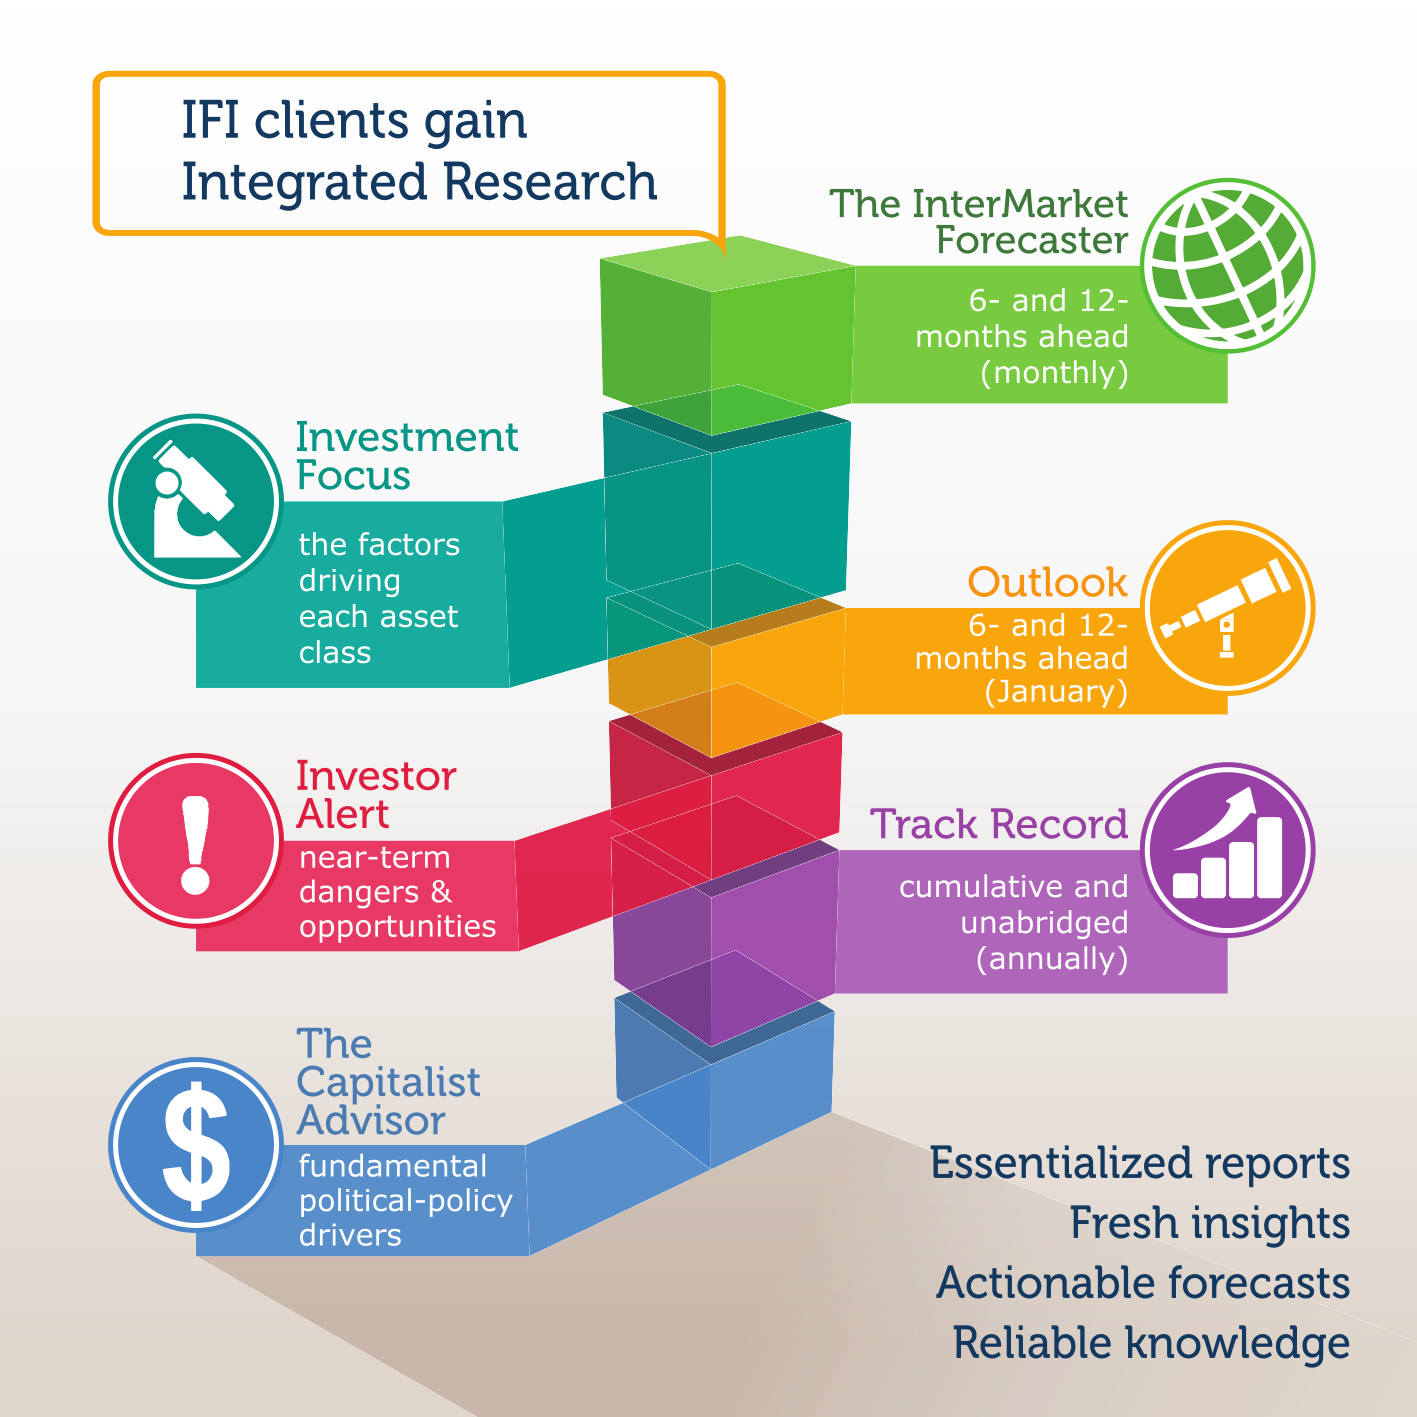 IFI clients gain integrated research